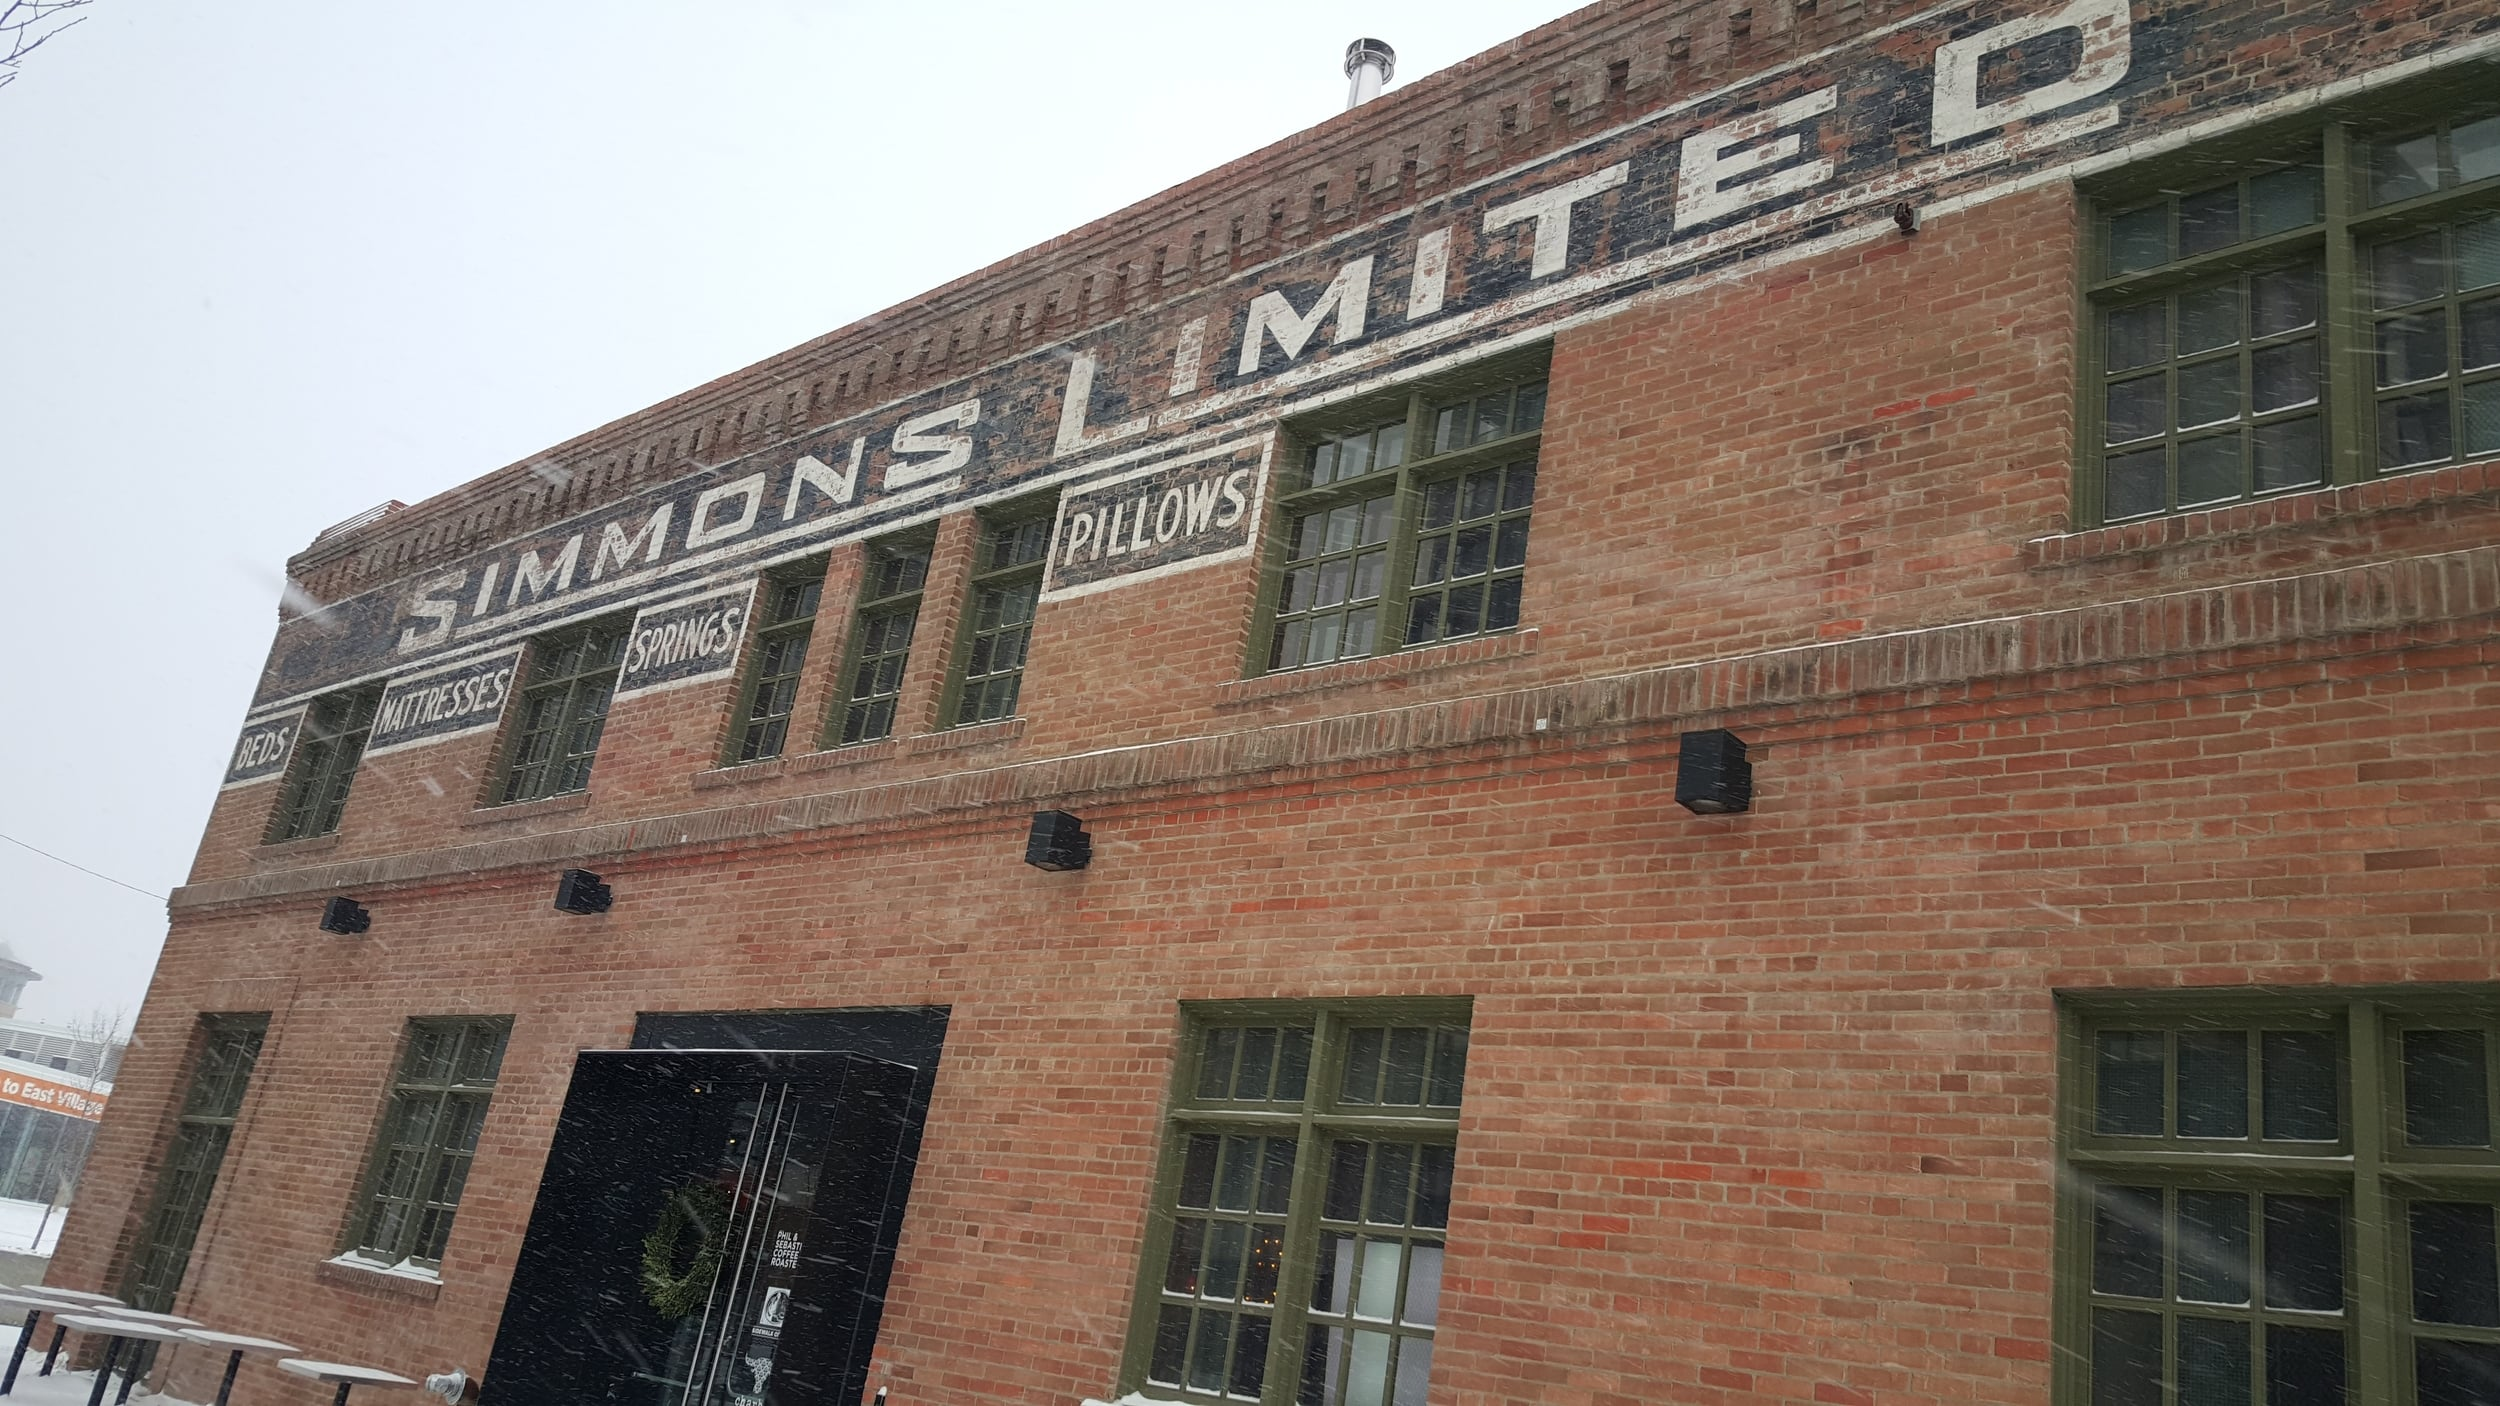 Simmons building